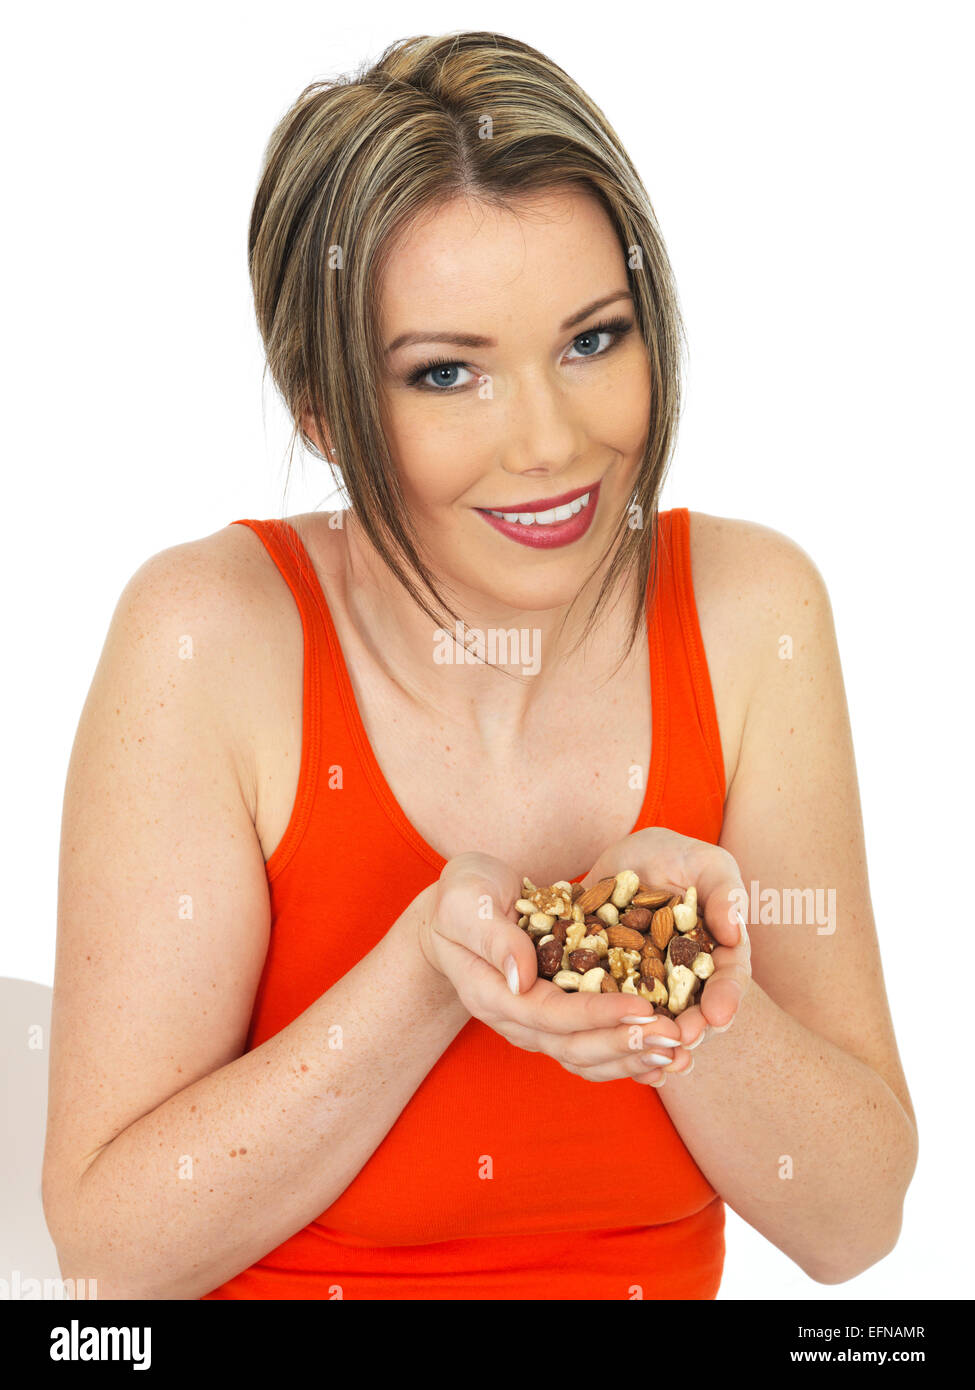 Young Healthy Woman Holding a Handful of Mixed Nuts - Stock Image